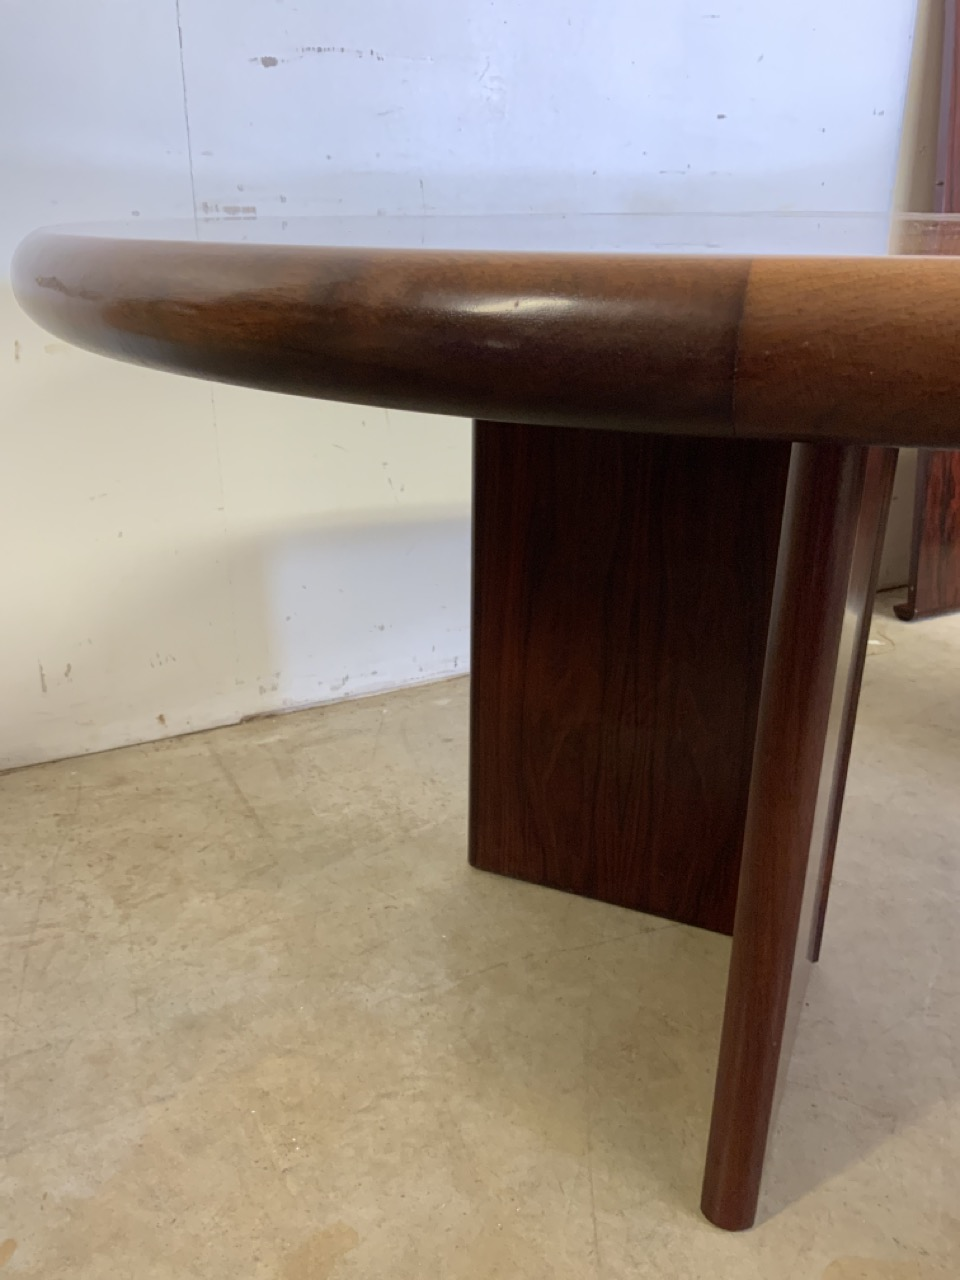 A mid century rosewood Scandinavian extendable table by Svegards Markaryd W:170cm x D:120cm x H:73cm - Image 5 of 8